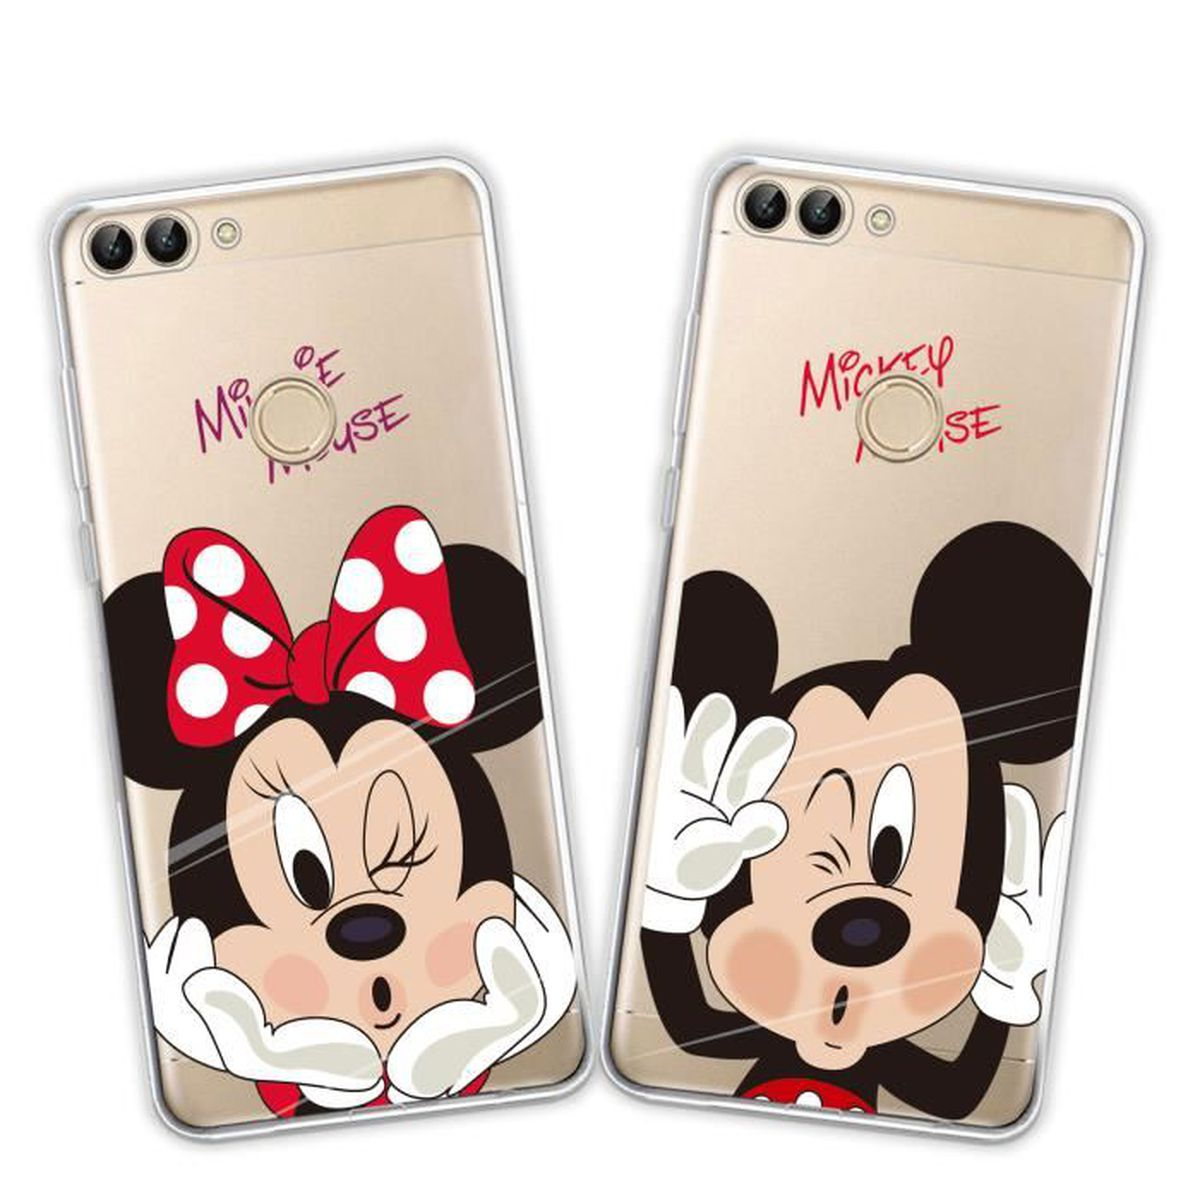 2 x coque huawei p smart disney mouse doux souple transparent tpu housse tui pour huawei p. Black Bedroom Furniture Sets. Home Design Ideas